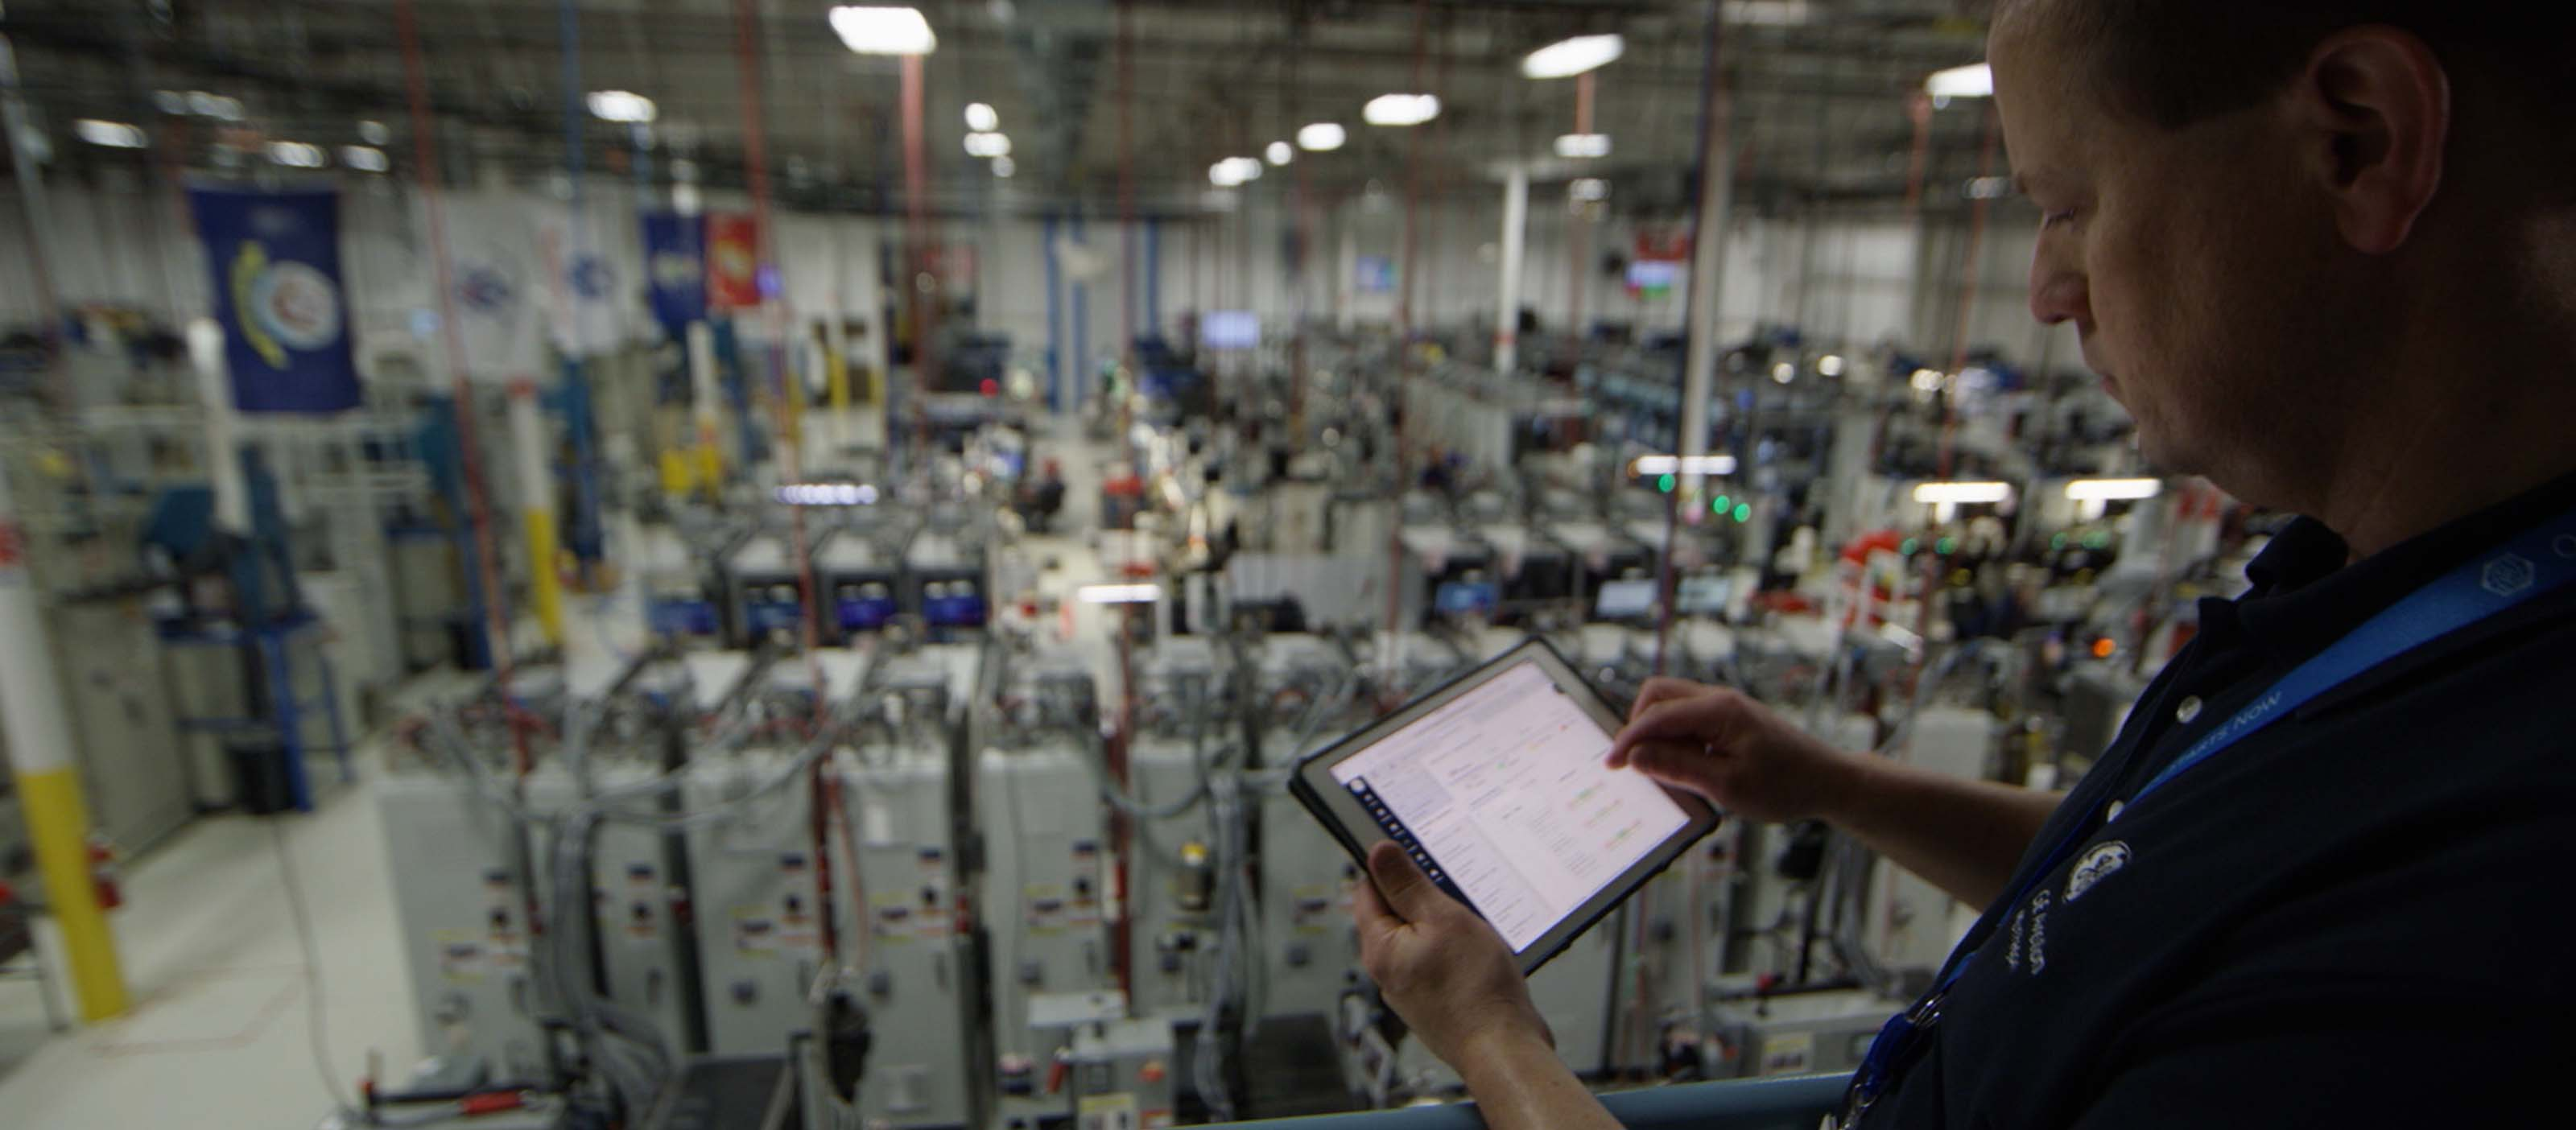 Using digital twins and APM software in a manufacturing plant | GE Digital